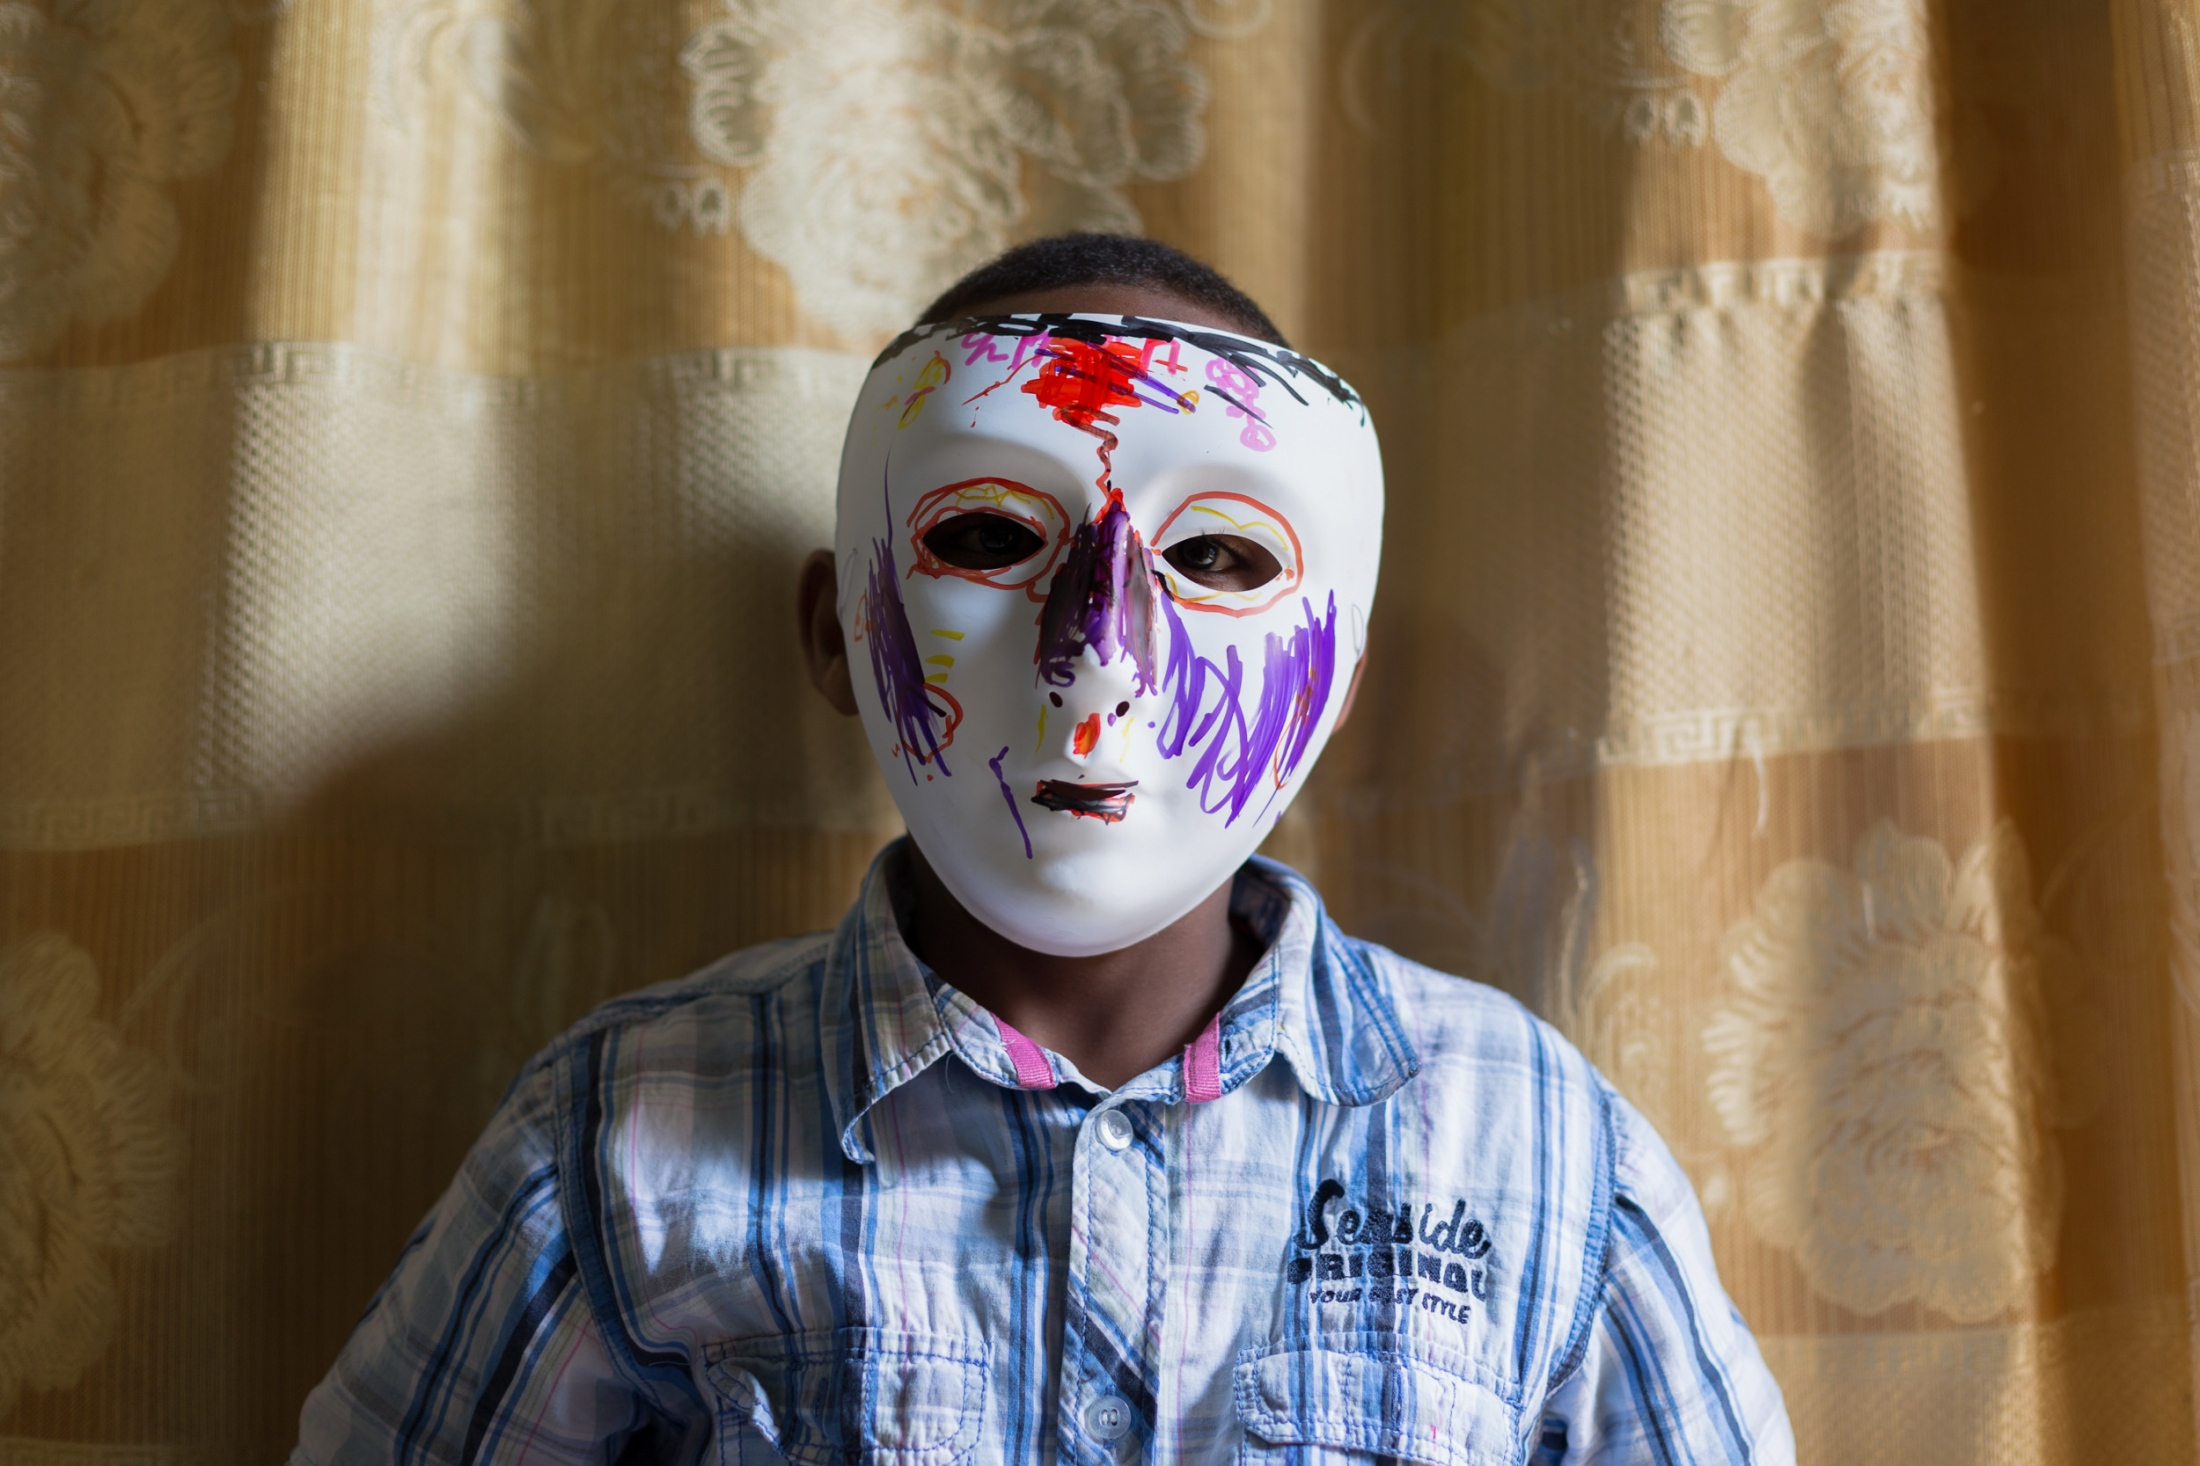 The portraiture of the children was shot in the building. It was designed around masks and art. A mask removes individuality; the plain mask represents the stereotypical, impersonal images produced en masse of refugees. The children created their own photograph, decorating over the plain white masks with complete freedom, adding personalisation to each image, and this allowed space for greater self-representation. The interactive nature of the portraiture allowed for the process of documentation to be slowed down. It also simply made sitting in front of a large camera less intimidating and more fun. In turn, I find these little things help to reduce the emotional barrier that exists between the photographer and the subject.